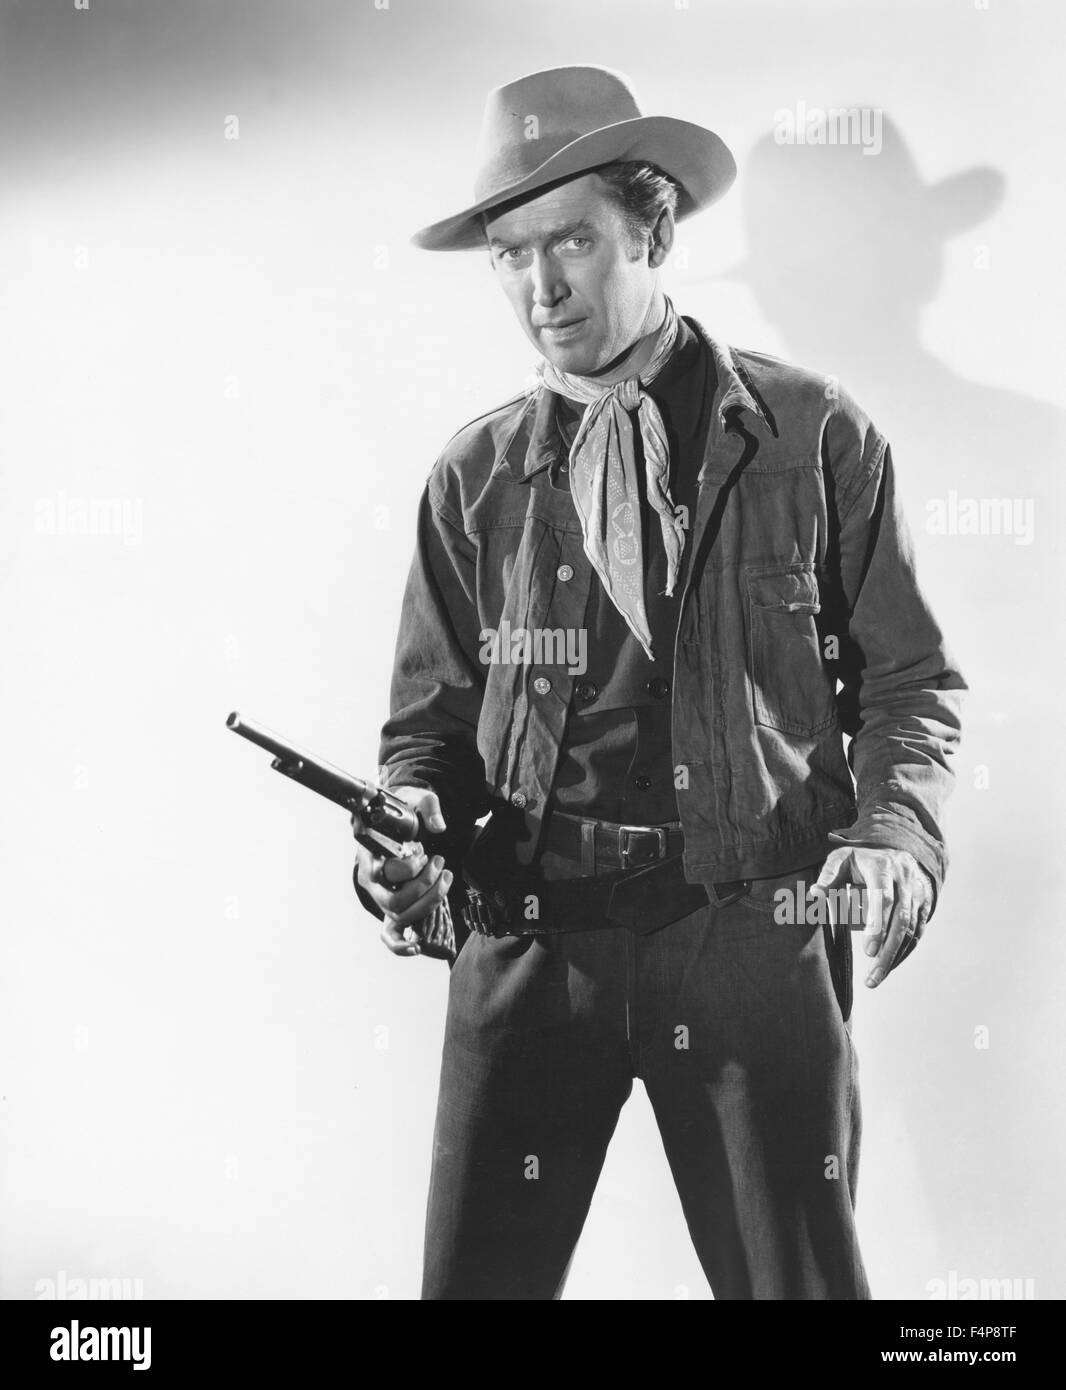 James Stewart / Broken Arrow 1950 directed by Delmer Daves - Stock Image